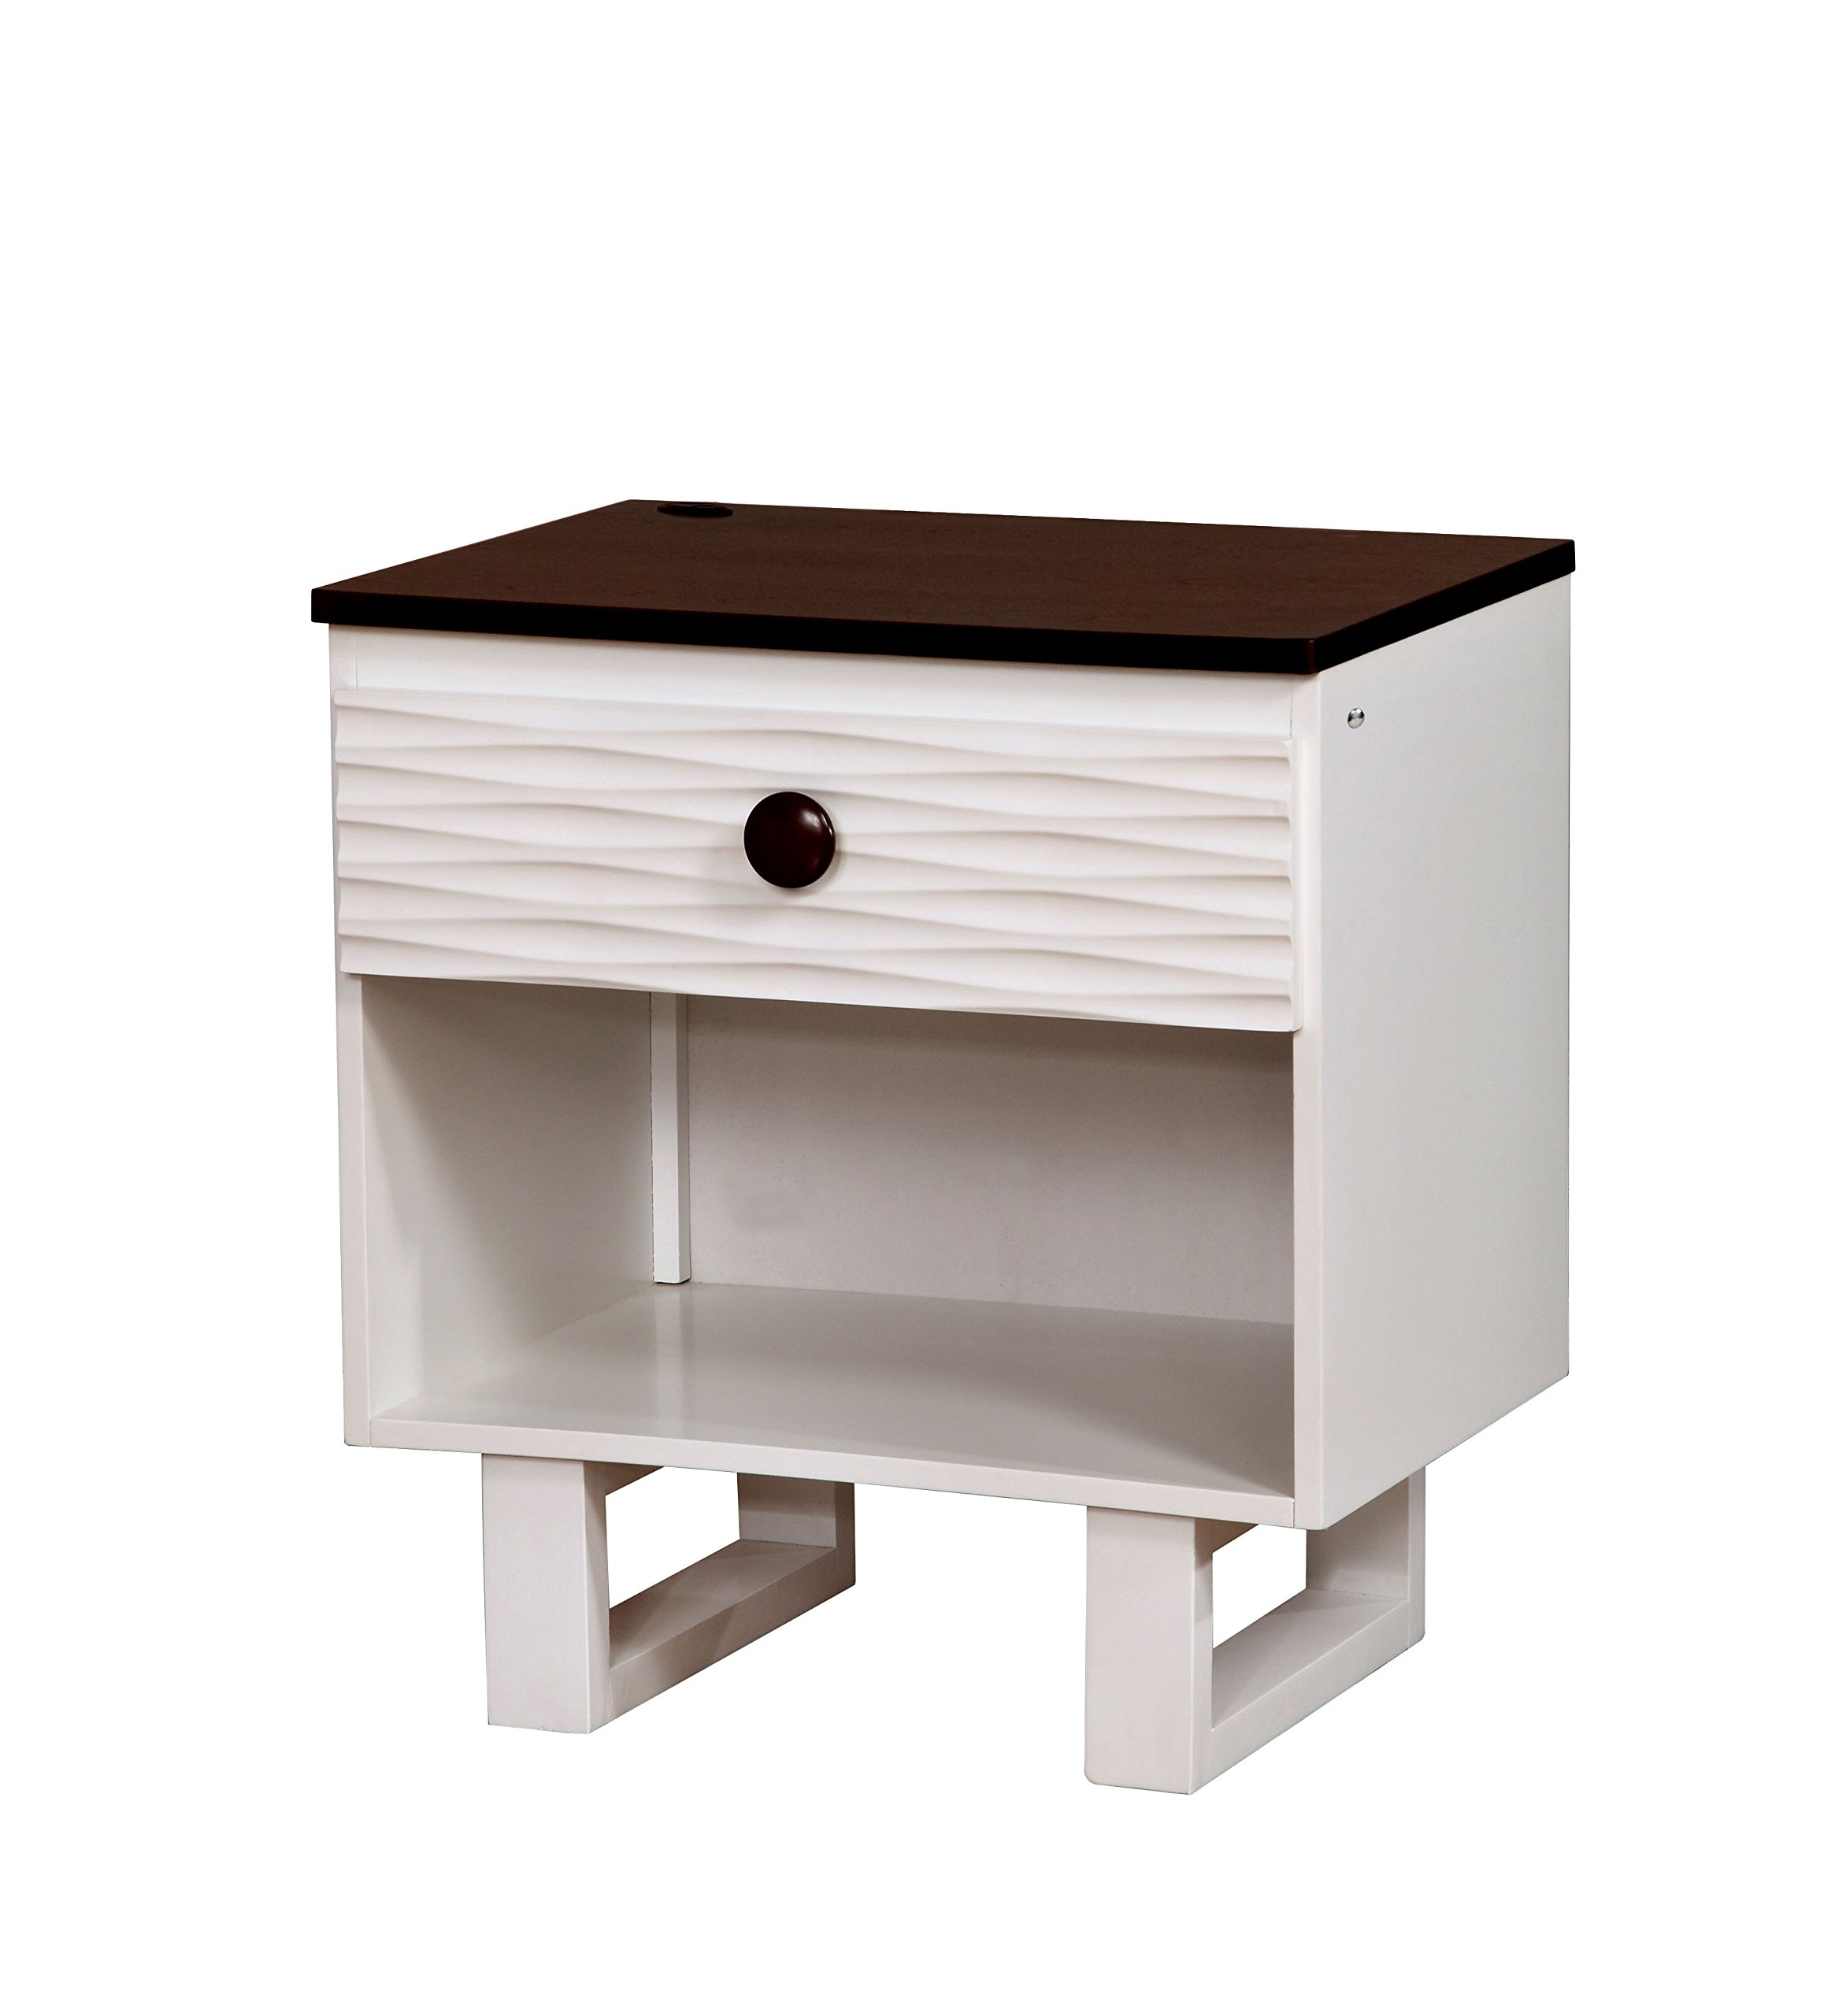 HOMES: Inside + Out IDF-7191N Merra Nightstand Childrens